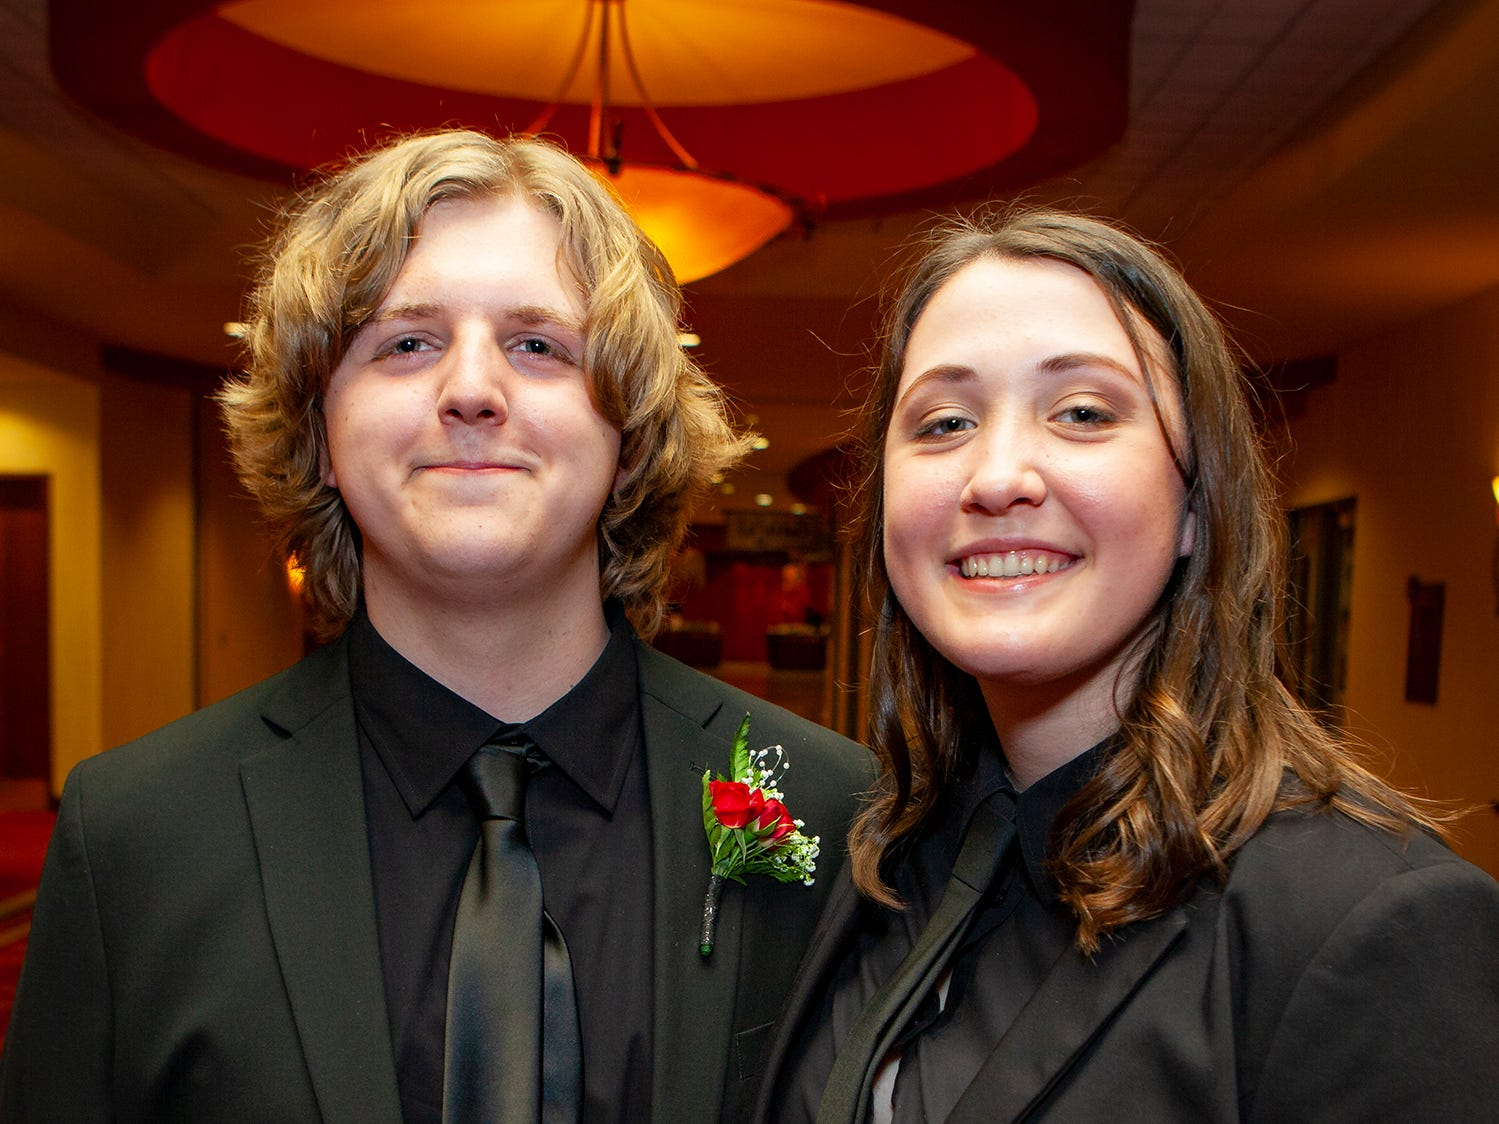 Ben Beauchene and Abbi Knell at Central Magnet School's prom Saturday, April 6, 2019 at Embassy Suites in Murfreesboro.